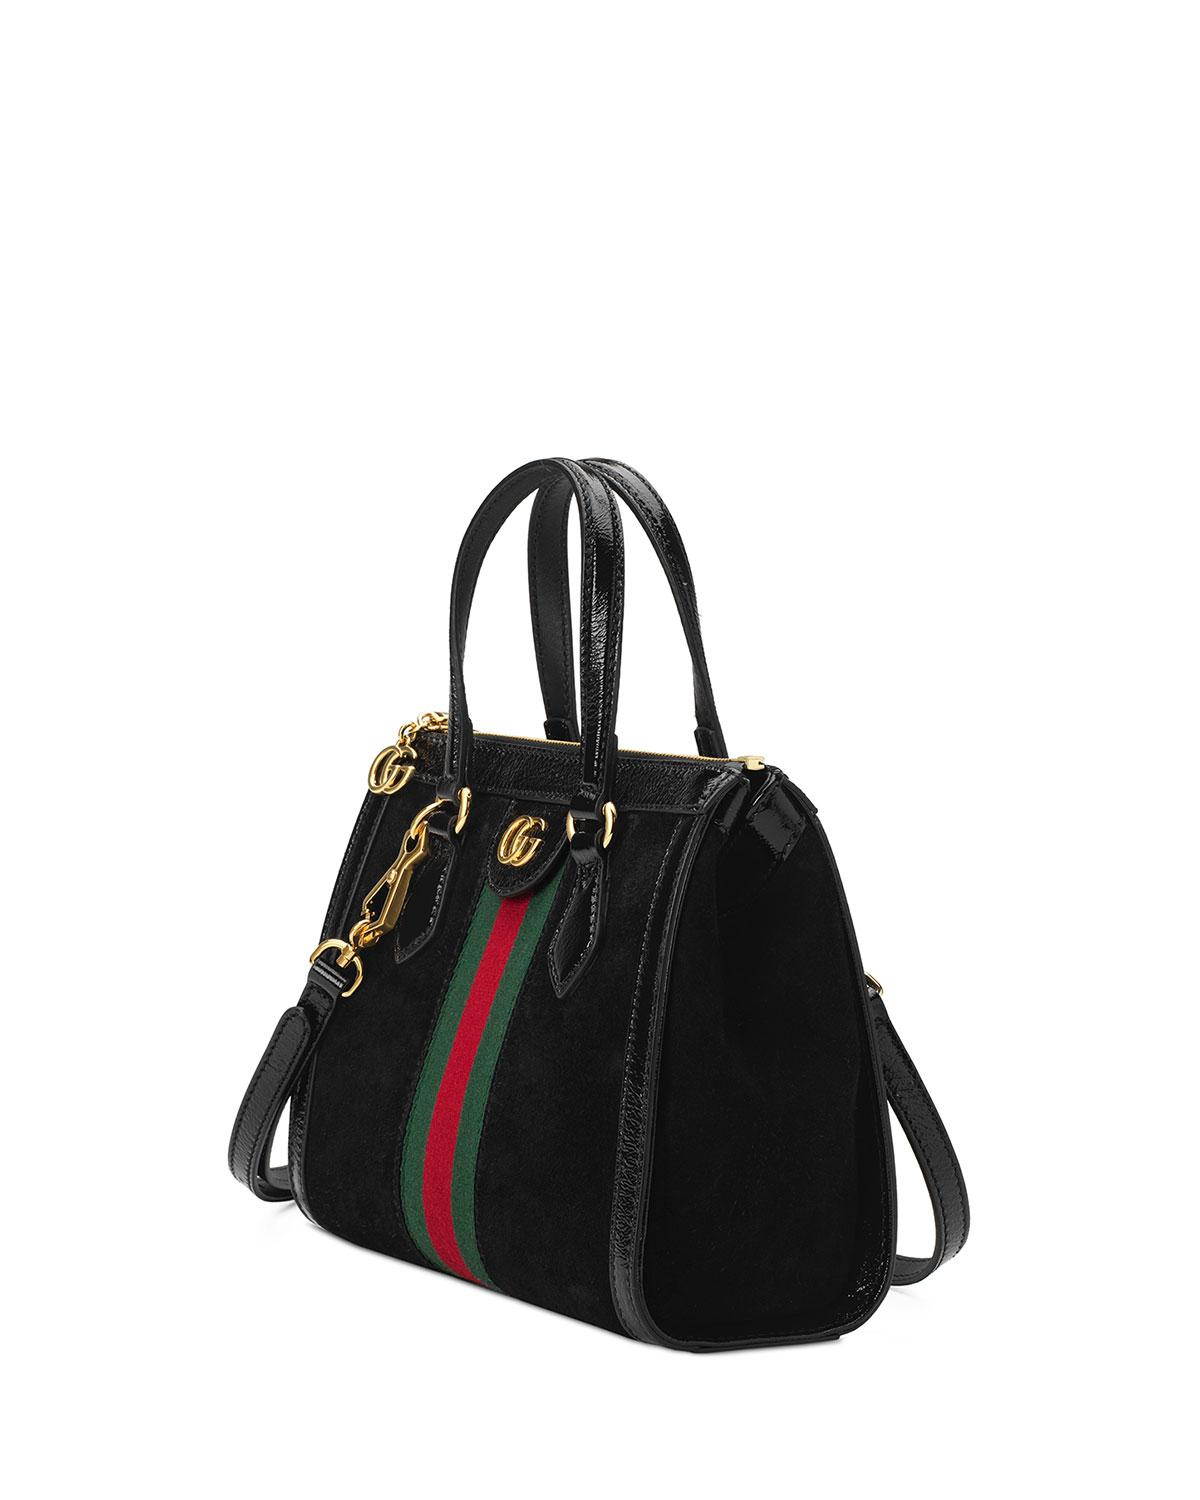 a37dd8bde1ee Gucci - Black Ophidia Small Tote Bag - Lyst. View fullscreen